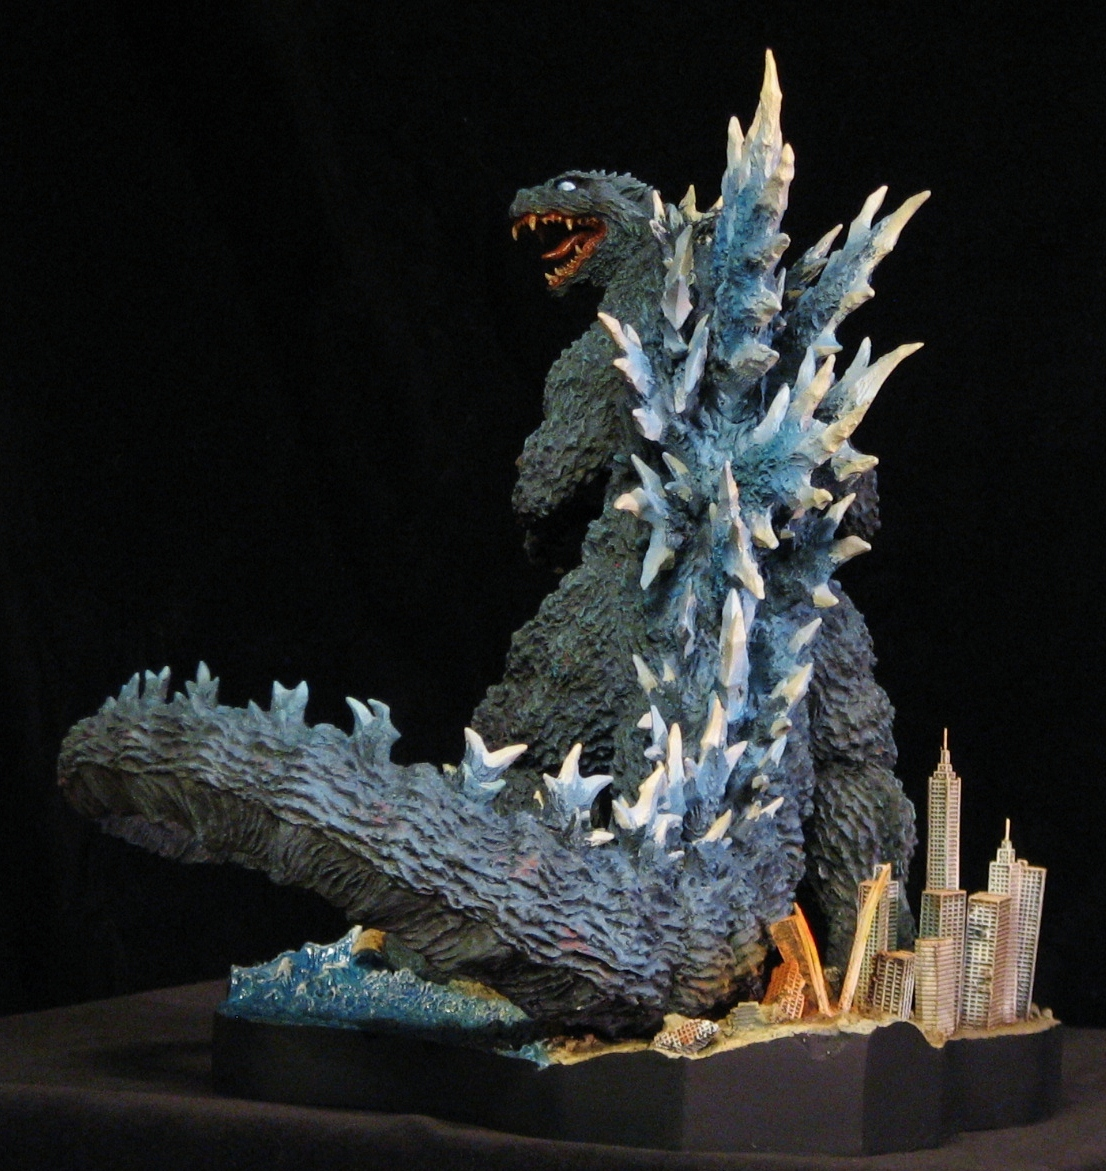 GODZILLA Final Wars 2005 Poster version by Yuji Sakai resin 26 cm